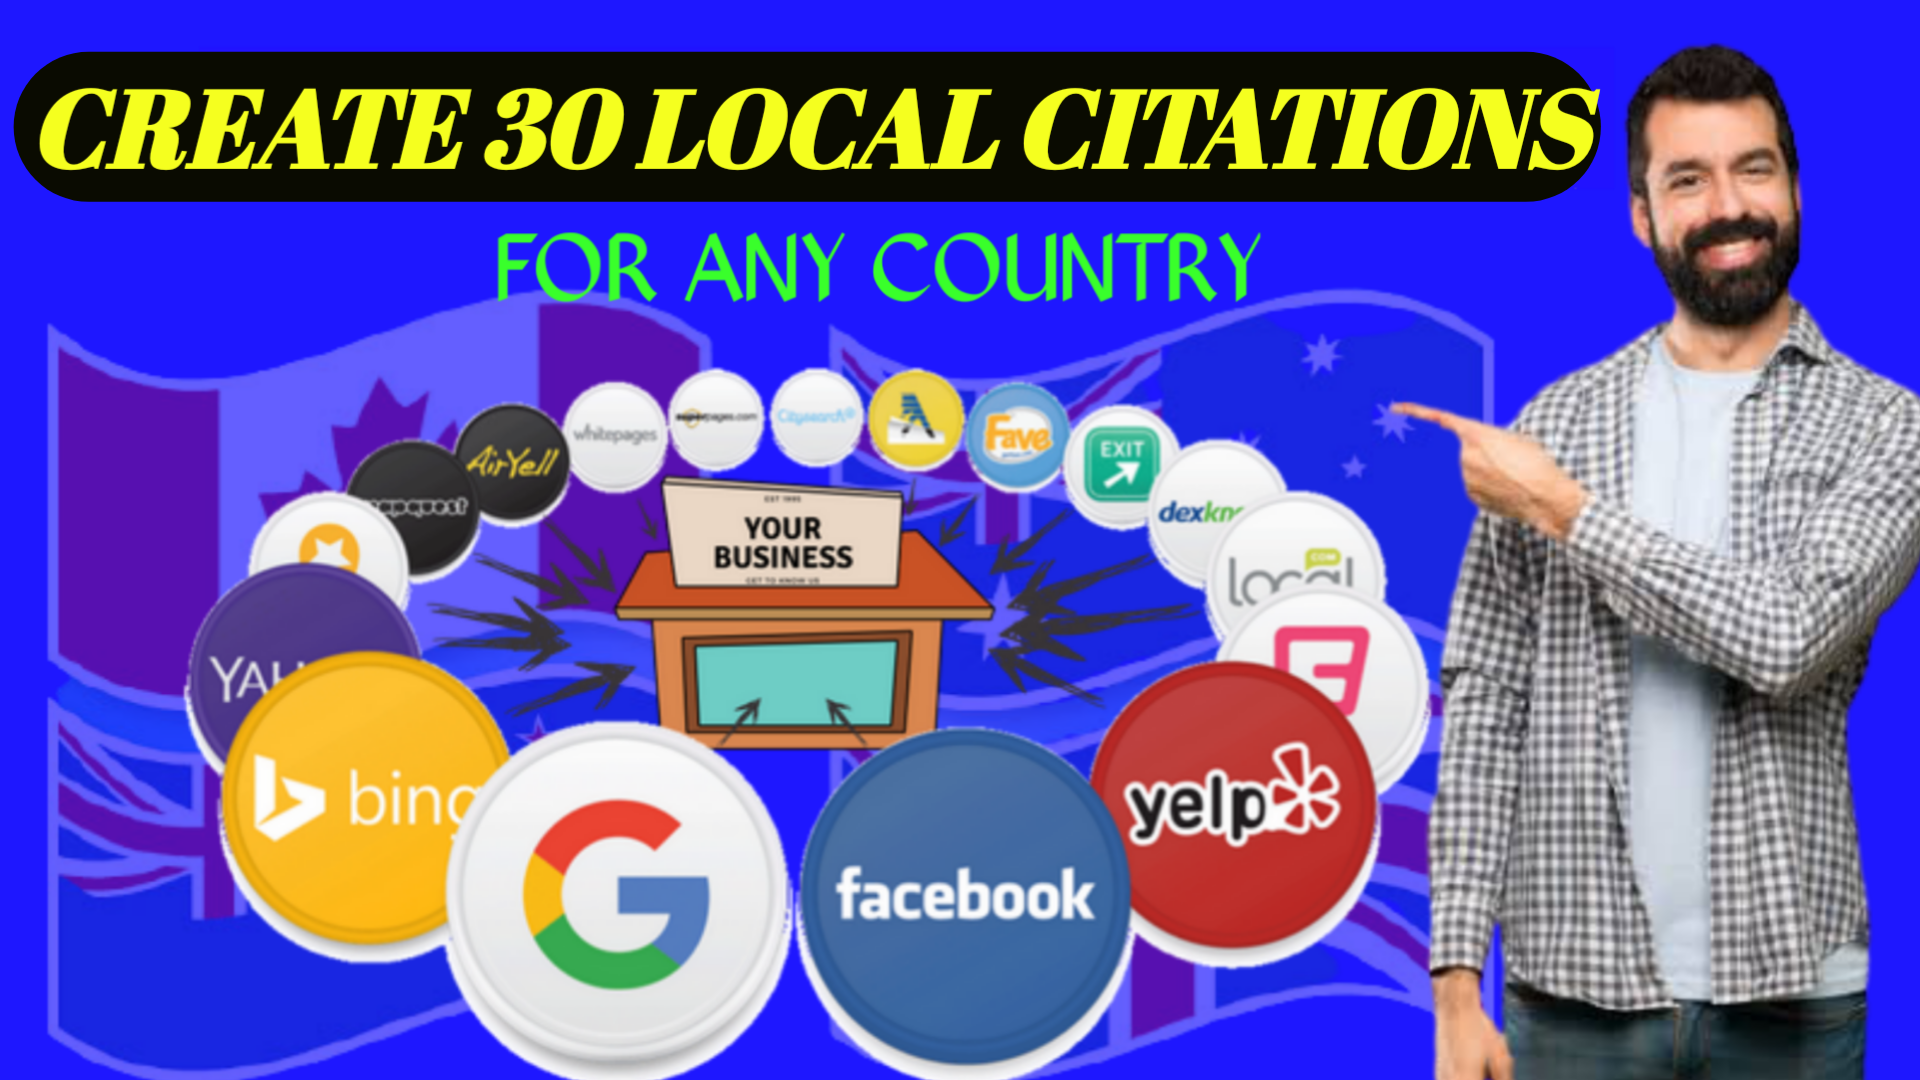 I Will Create 30 Local Citations or Local SEO Business Listings For Any Country.